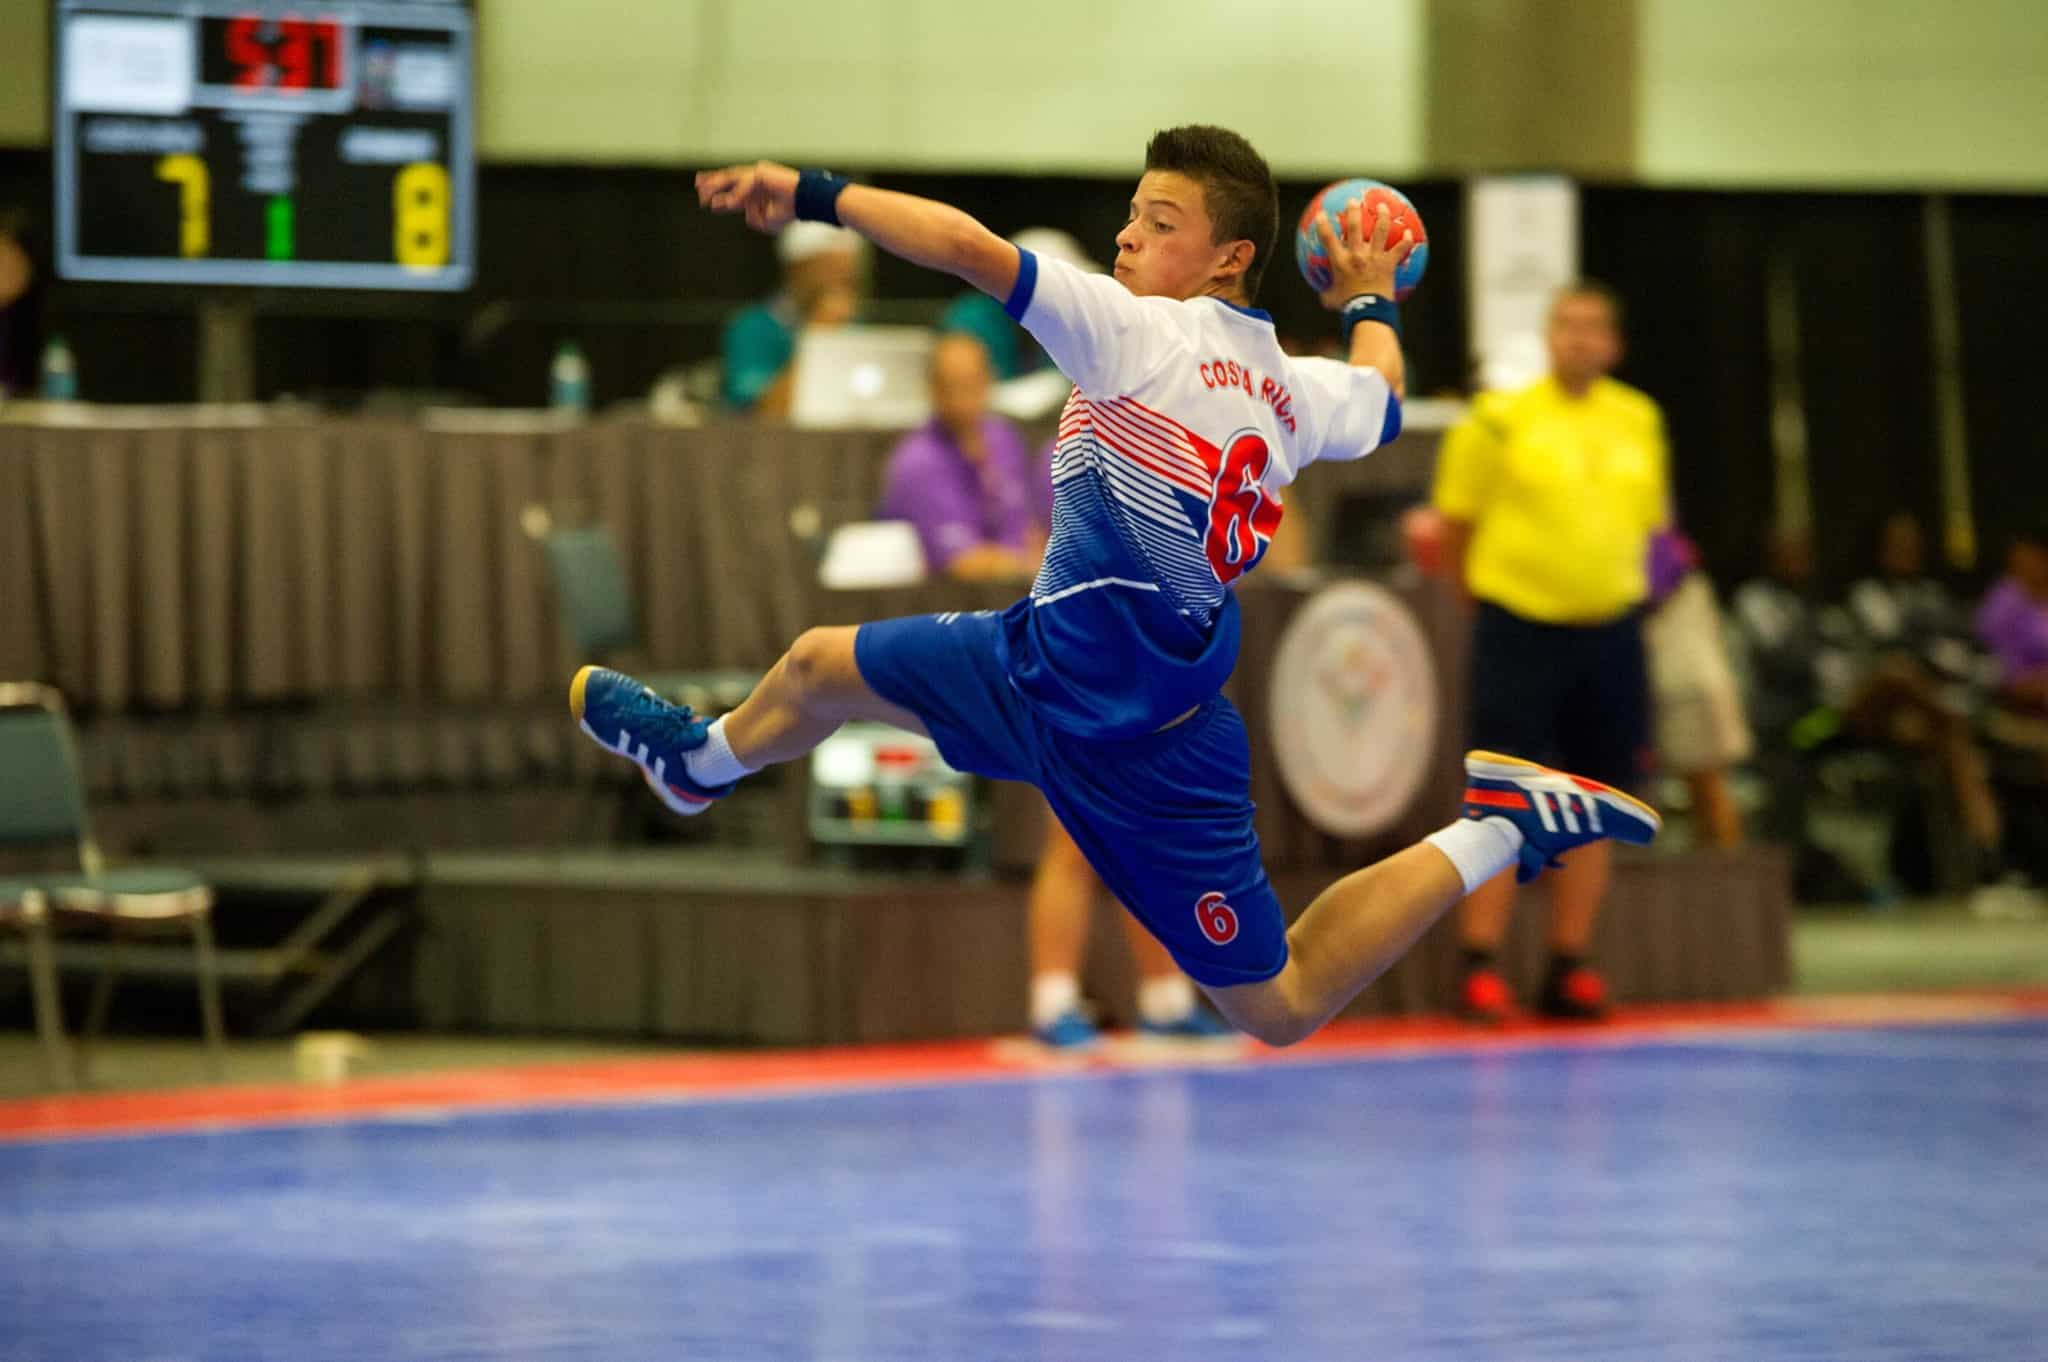 With a championship win in handball on Saturday, Costa Rica secured 76 gold medals at the week-long Special Olympic Games in Los Angeles, California.